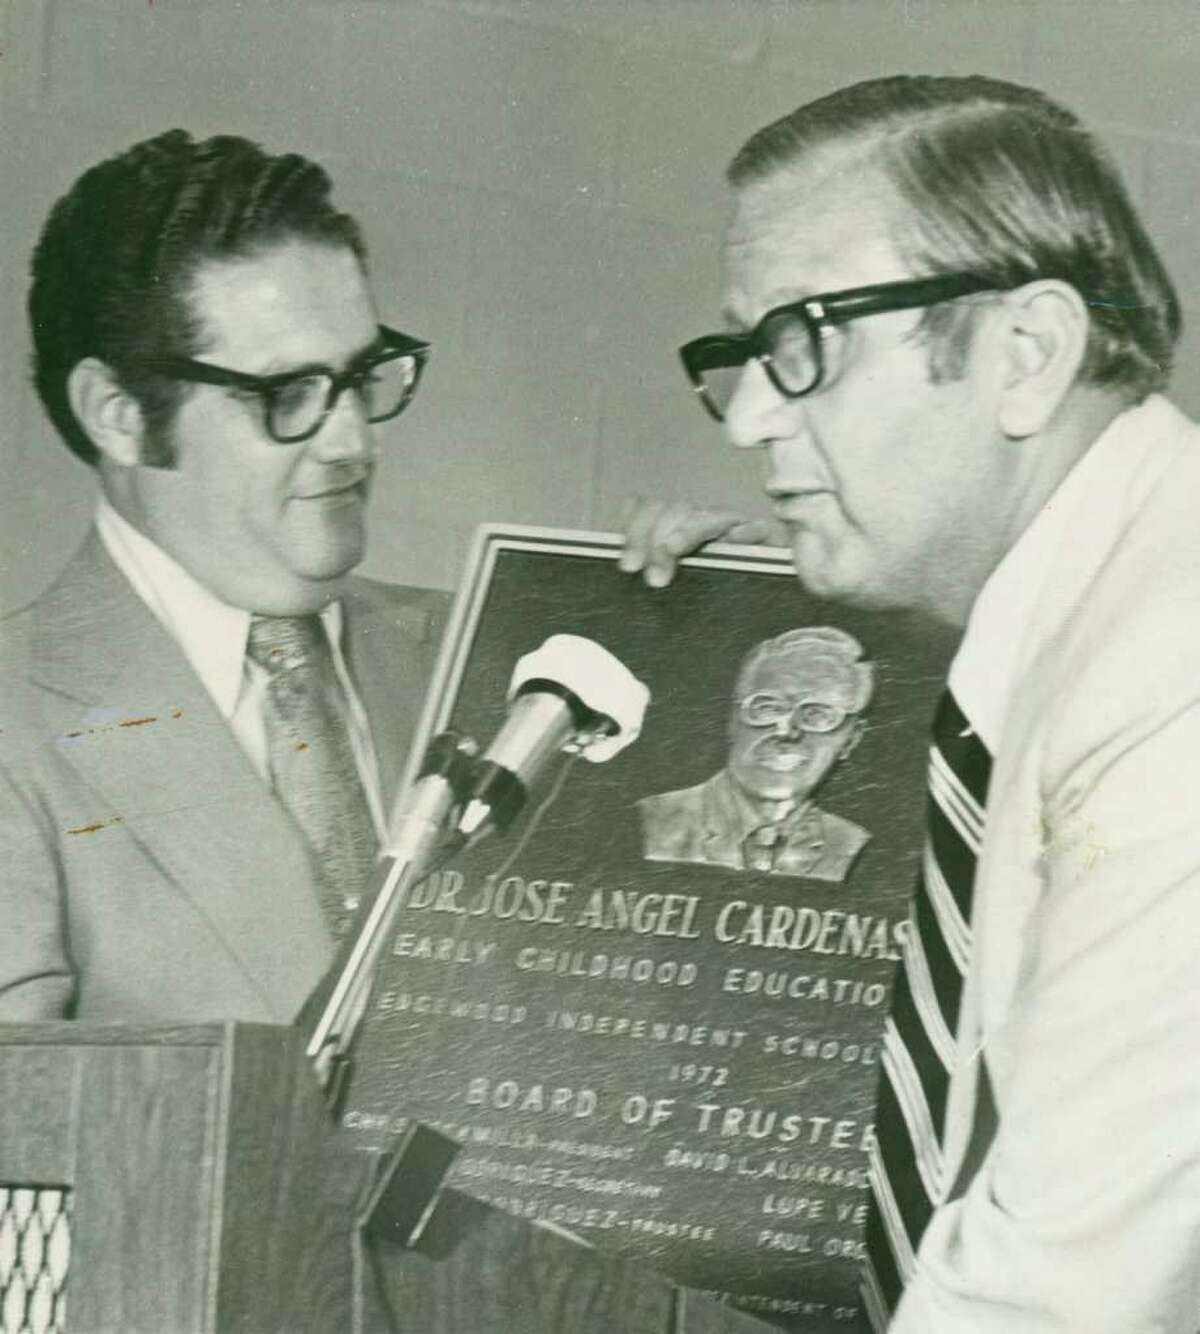 José A. Cárdenas (left) served as an Edgewood Independent School District superintendent, one of his many accomplishments. On the right is John Gatti.